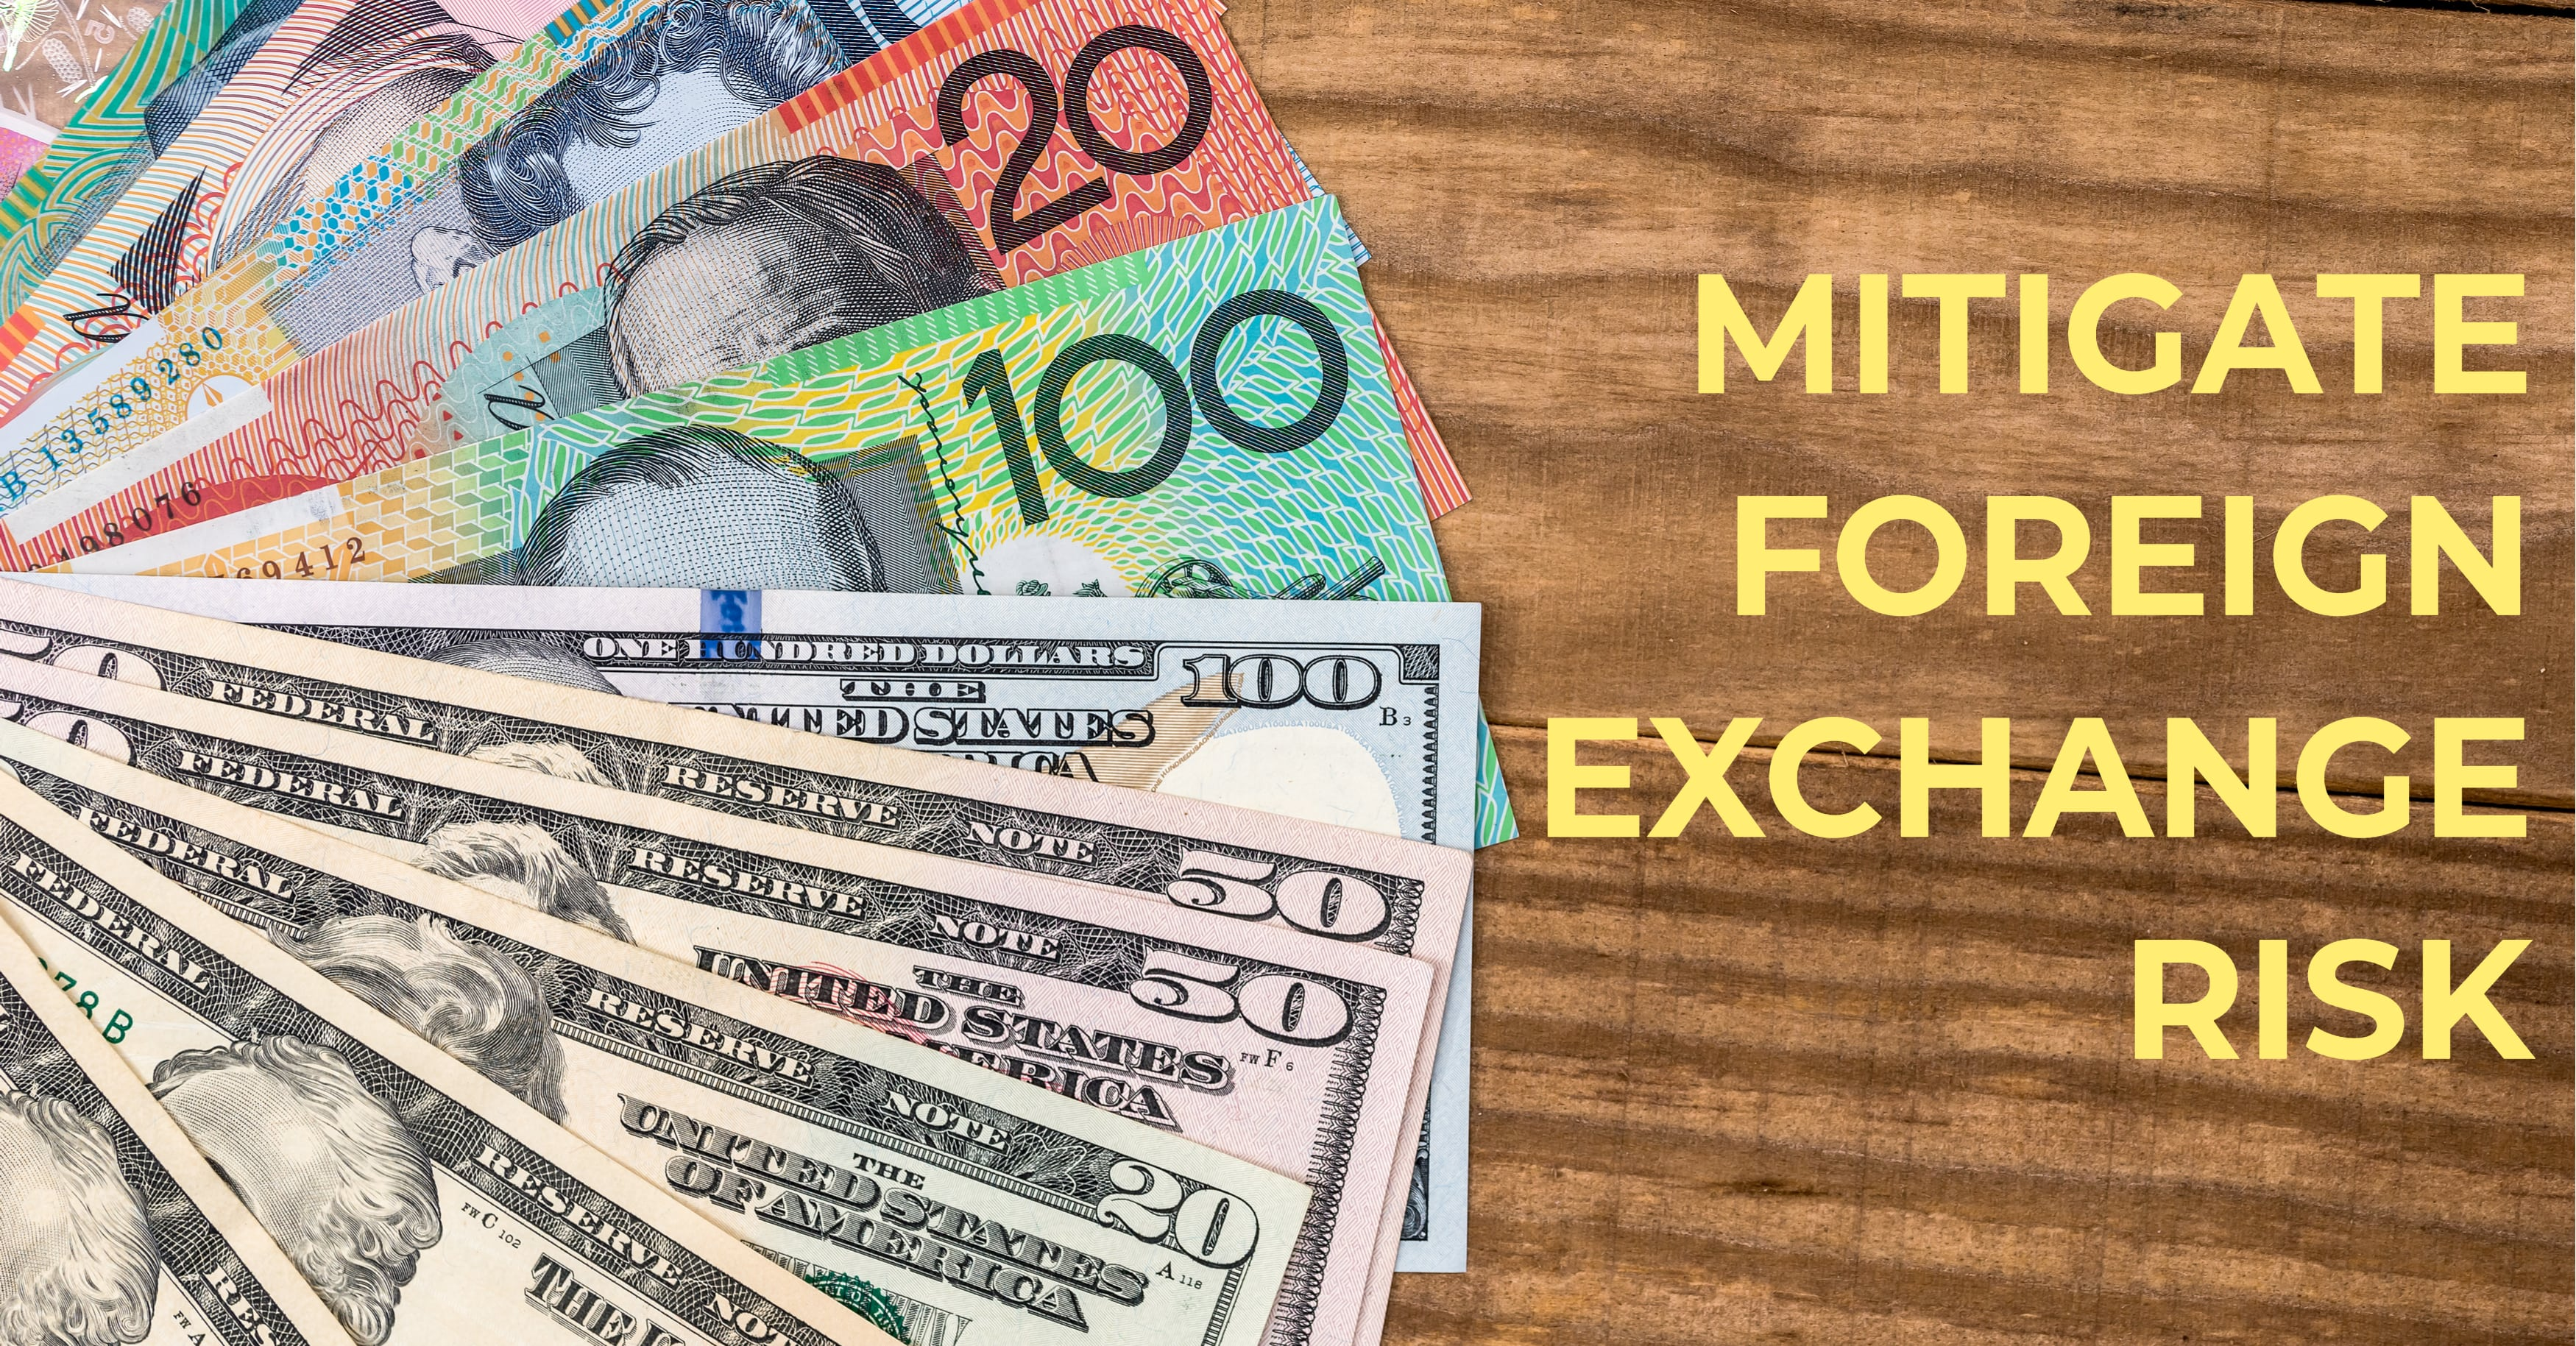 How to Mitigate Foreign Exchange Risk